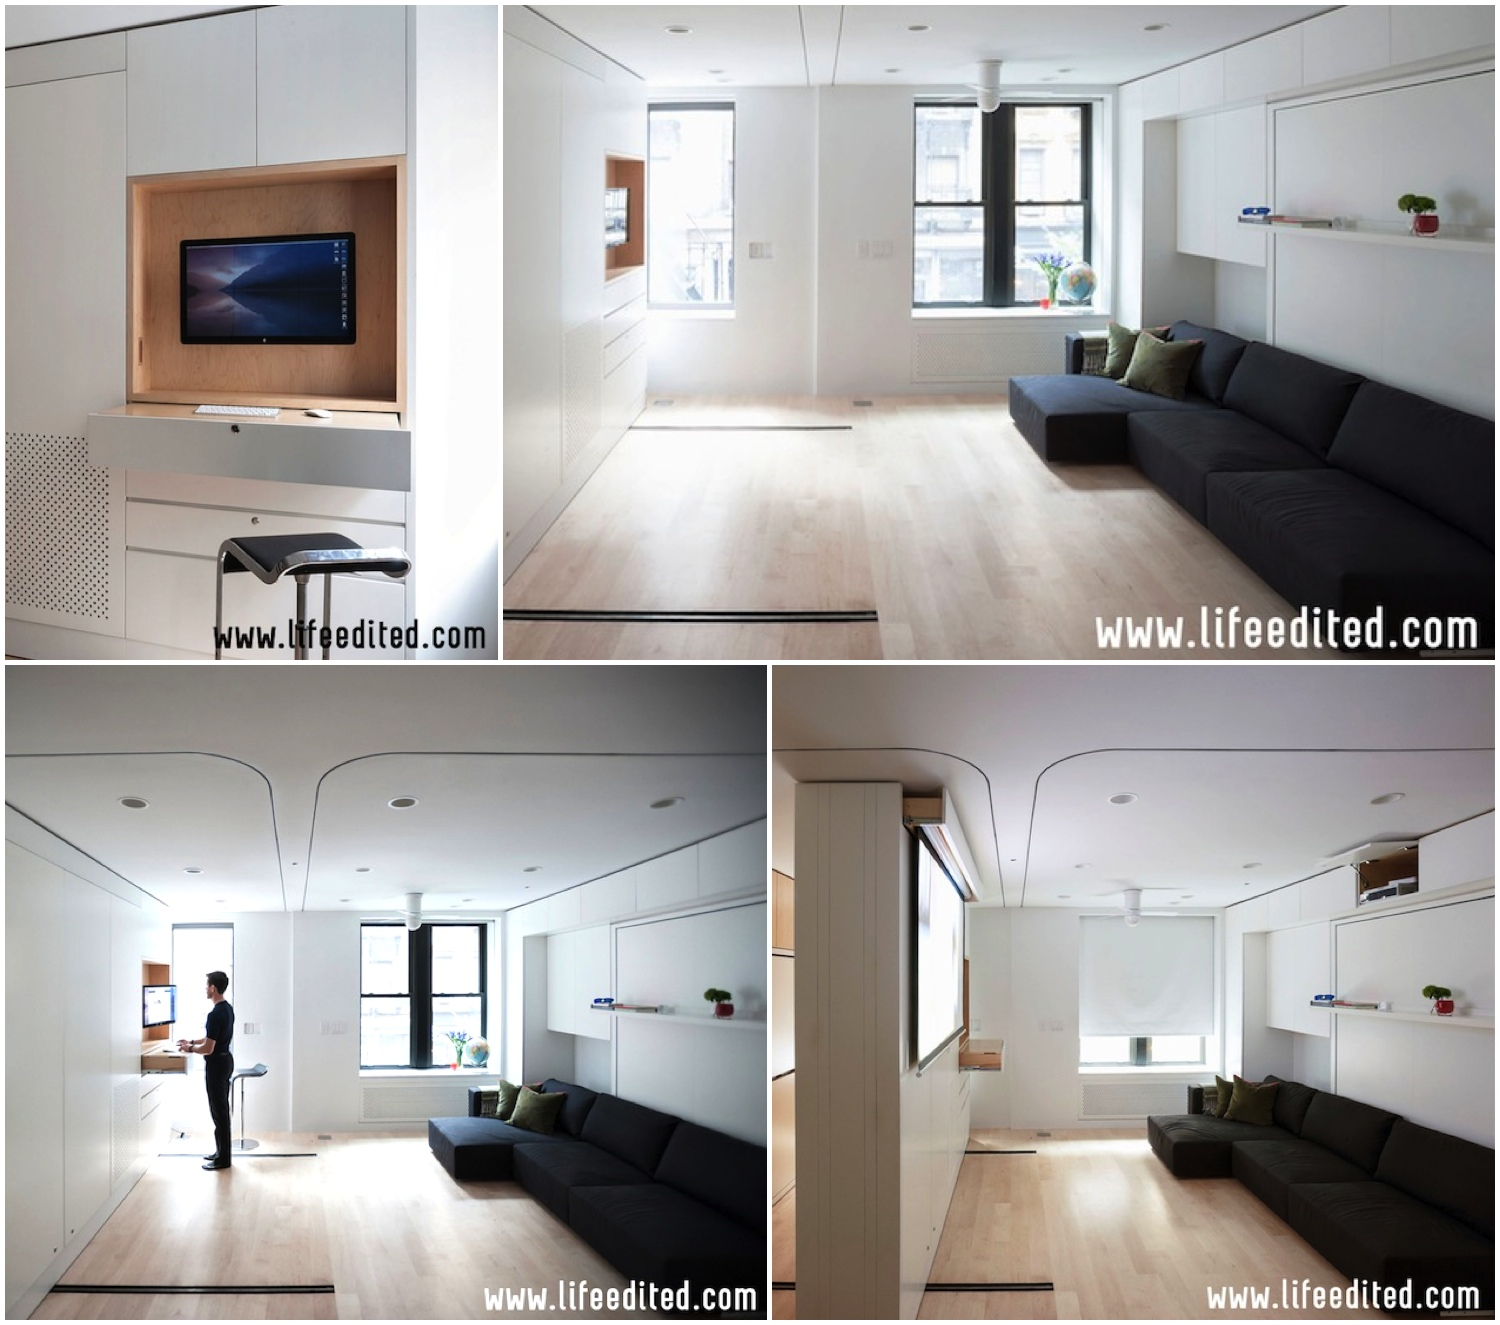 lifeedited apartment